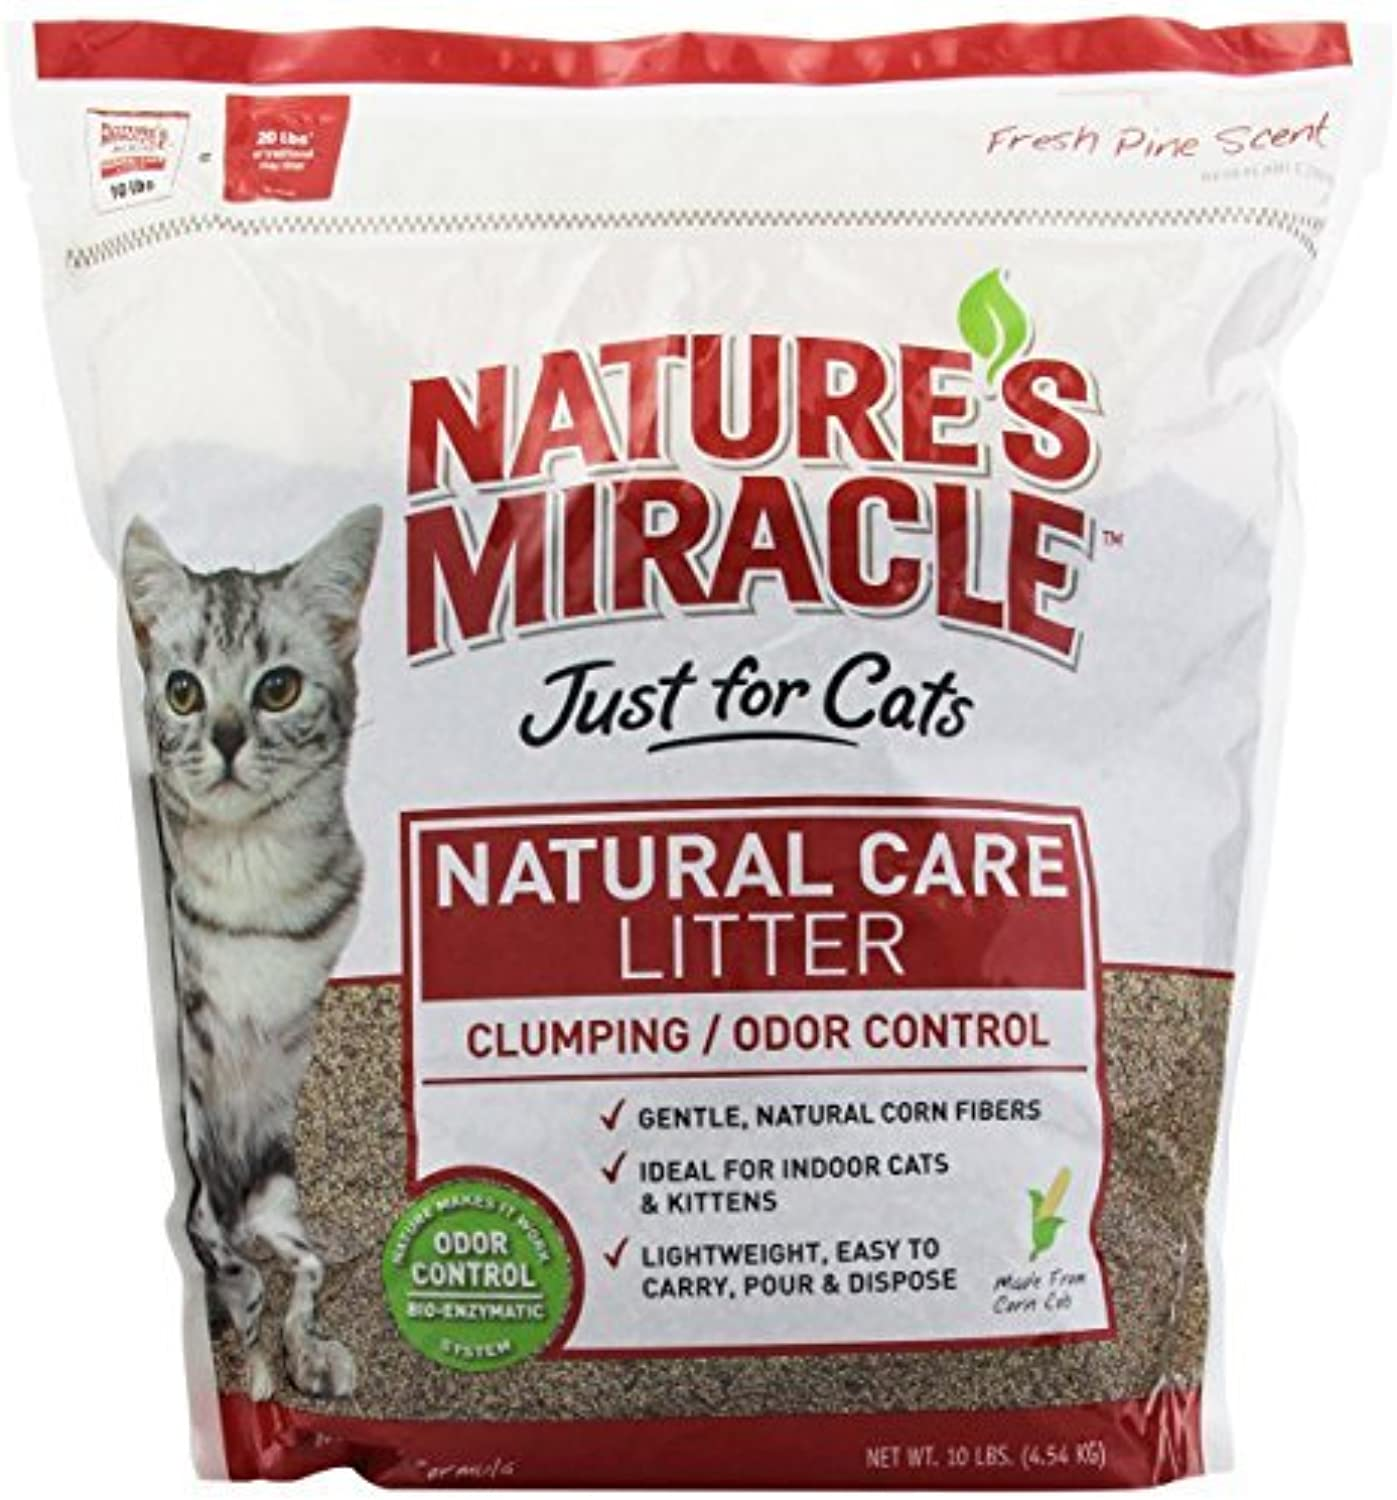 Nature's Miracle Odor Control Corn Cob Clumping Cat Litter, 10 lbs (5310) by Nature's Miracle